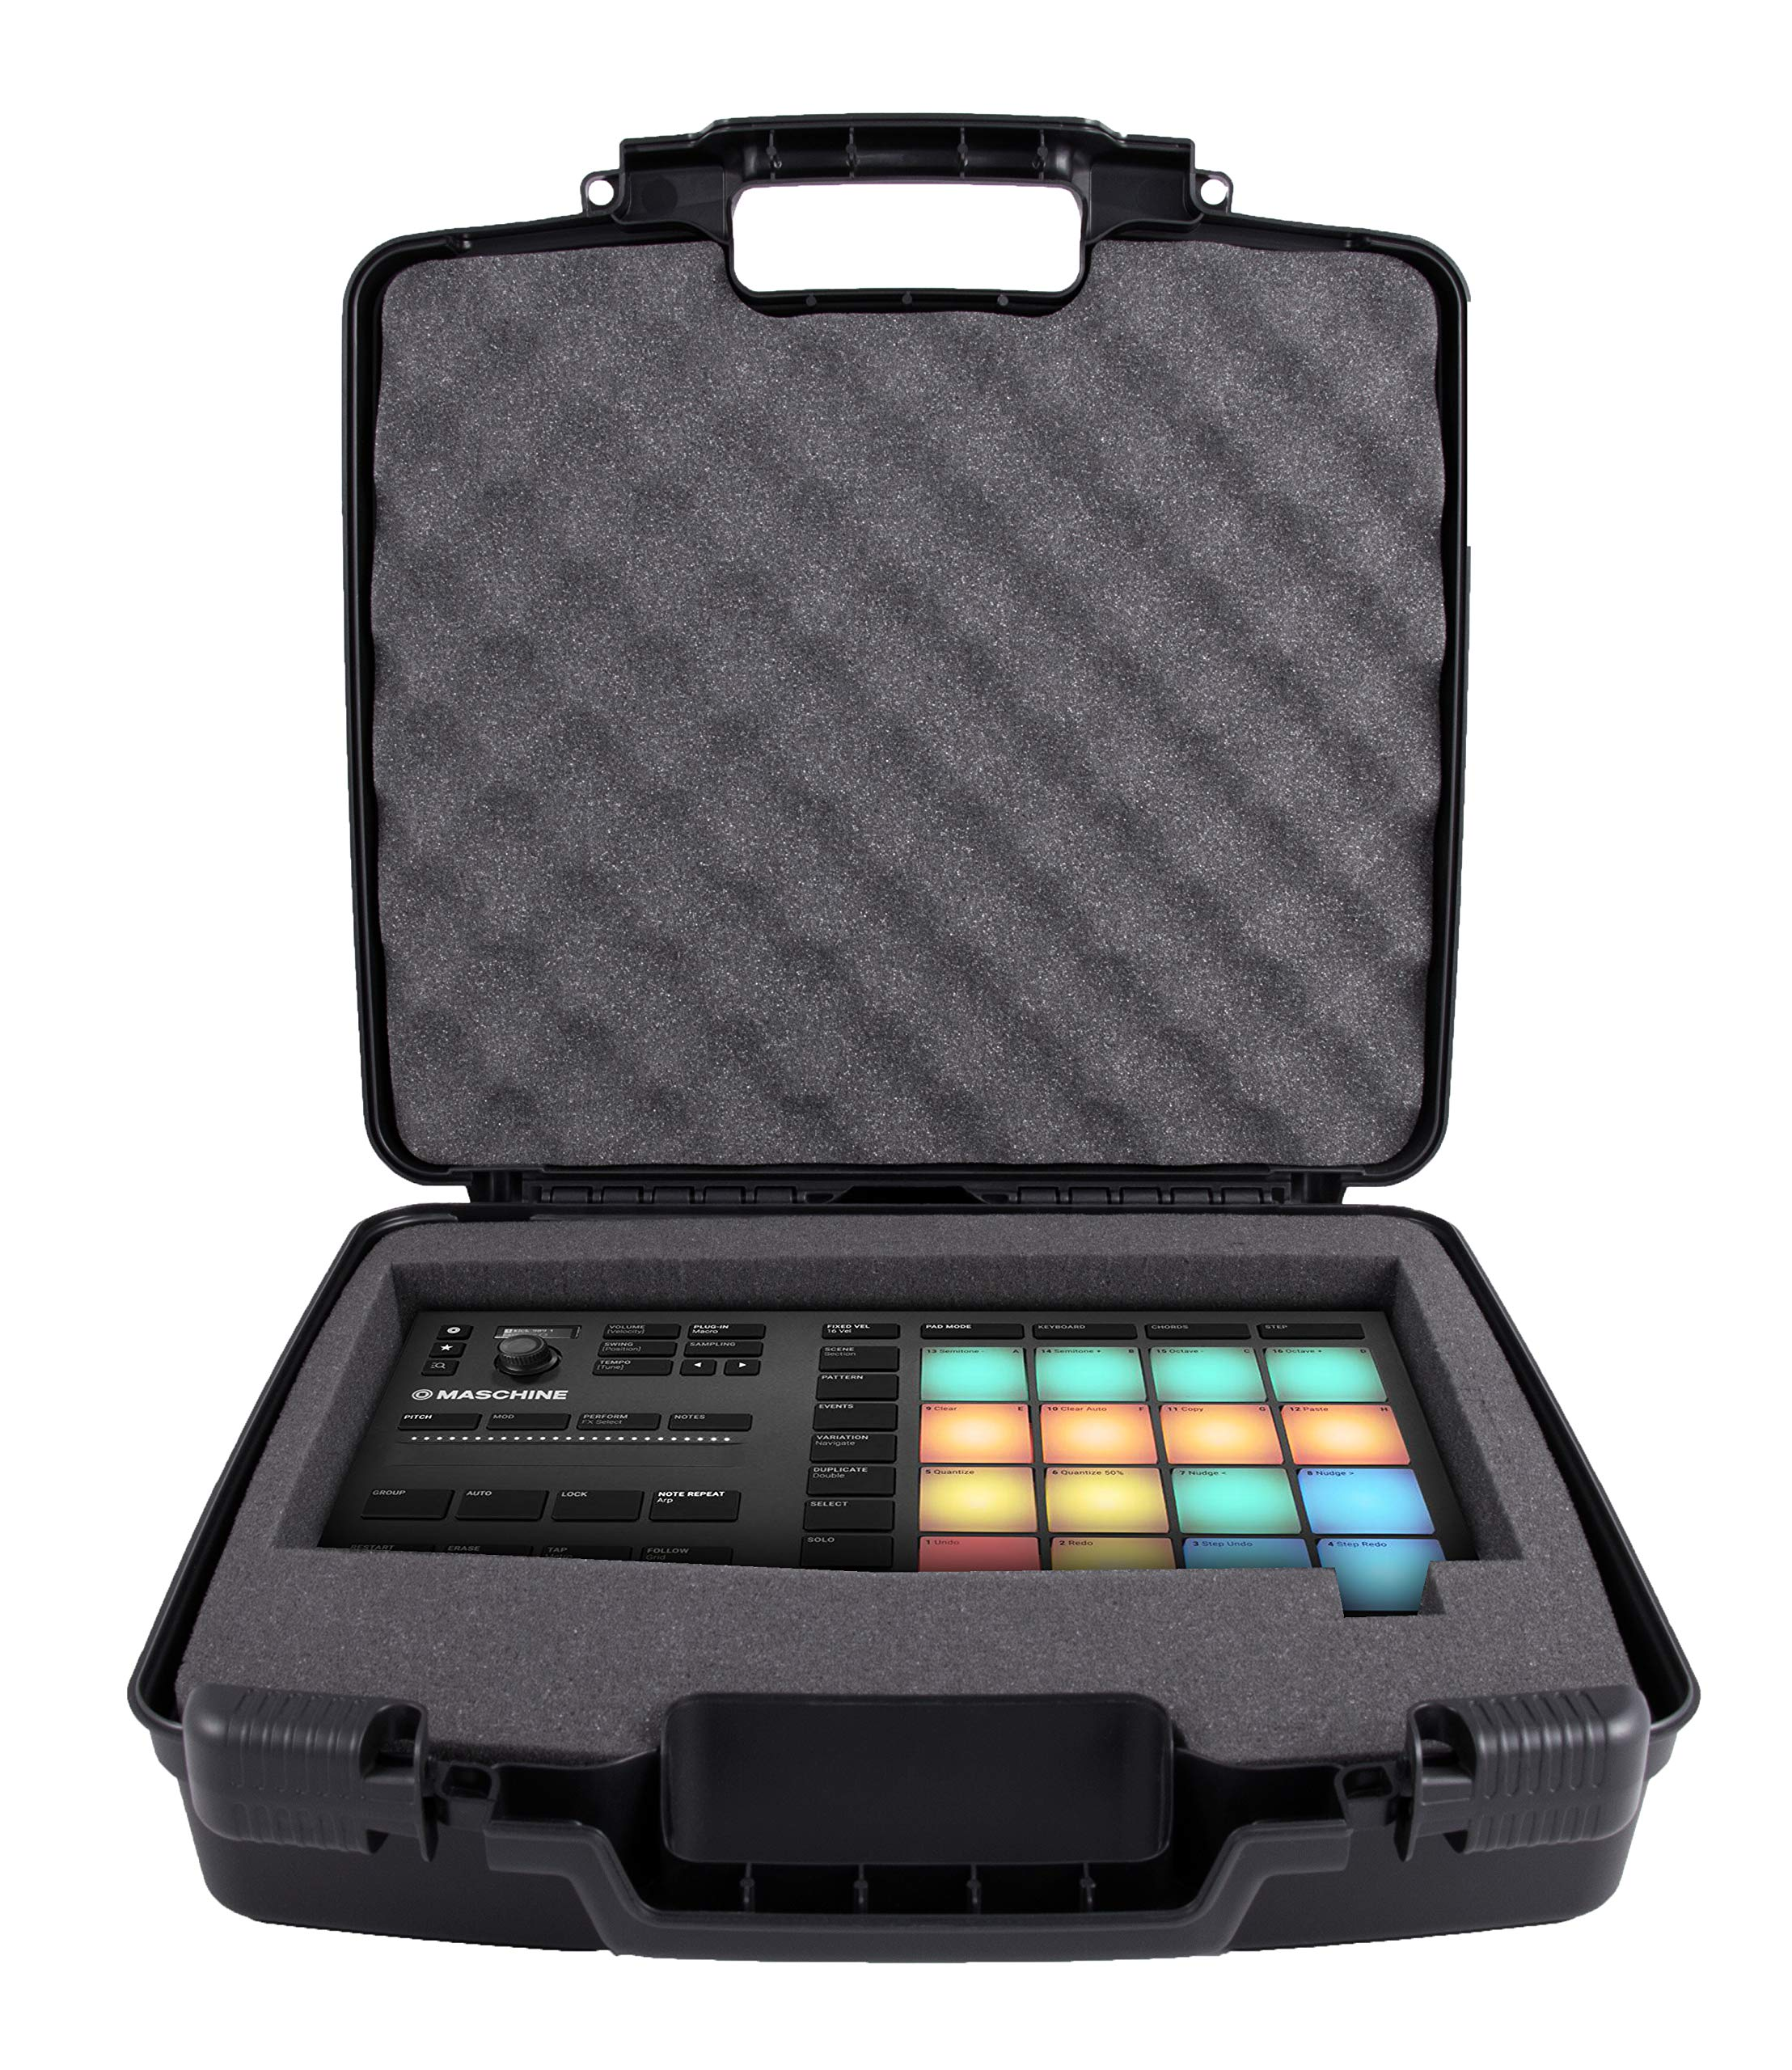 CASEMATIX Protective Hard Travel Case Fits Native Instruments Maschine Mikro Mk3 Drum Controller - Impact Protection, Dense Padded Foam by CASEMATIX (Image #1)